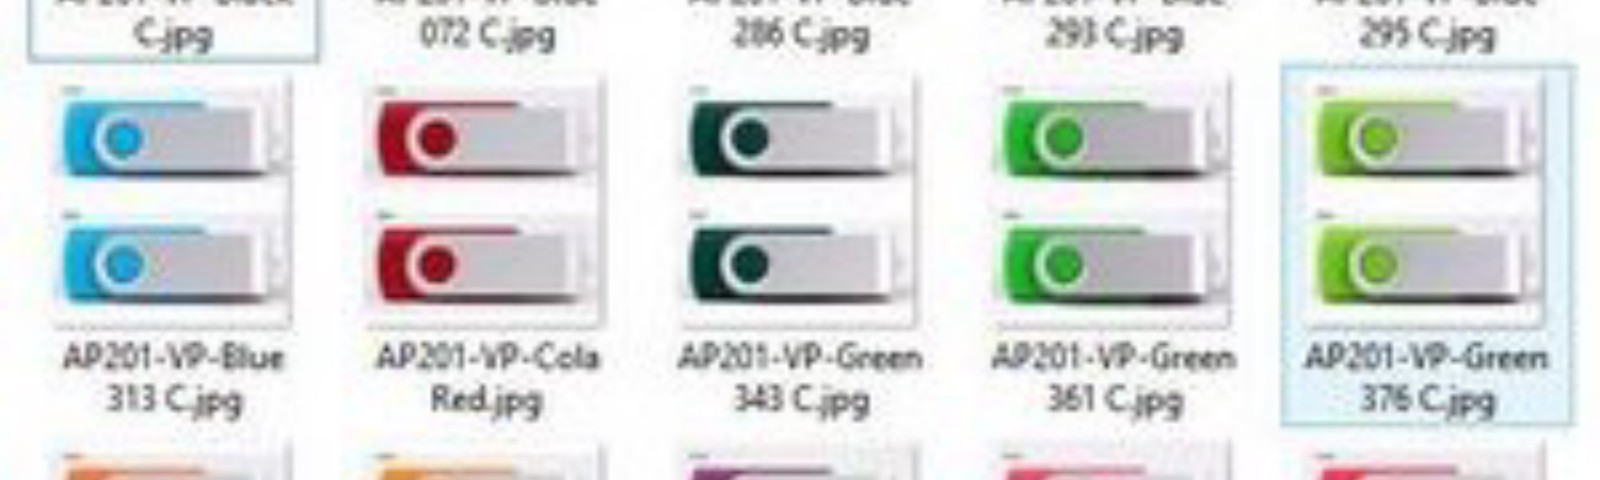 Picture of AP201 Twister Key USB Drives.